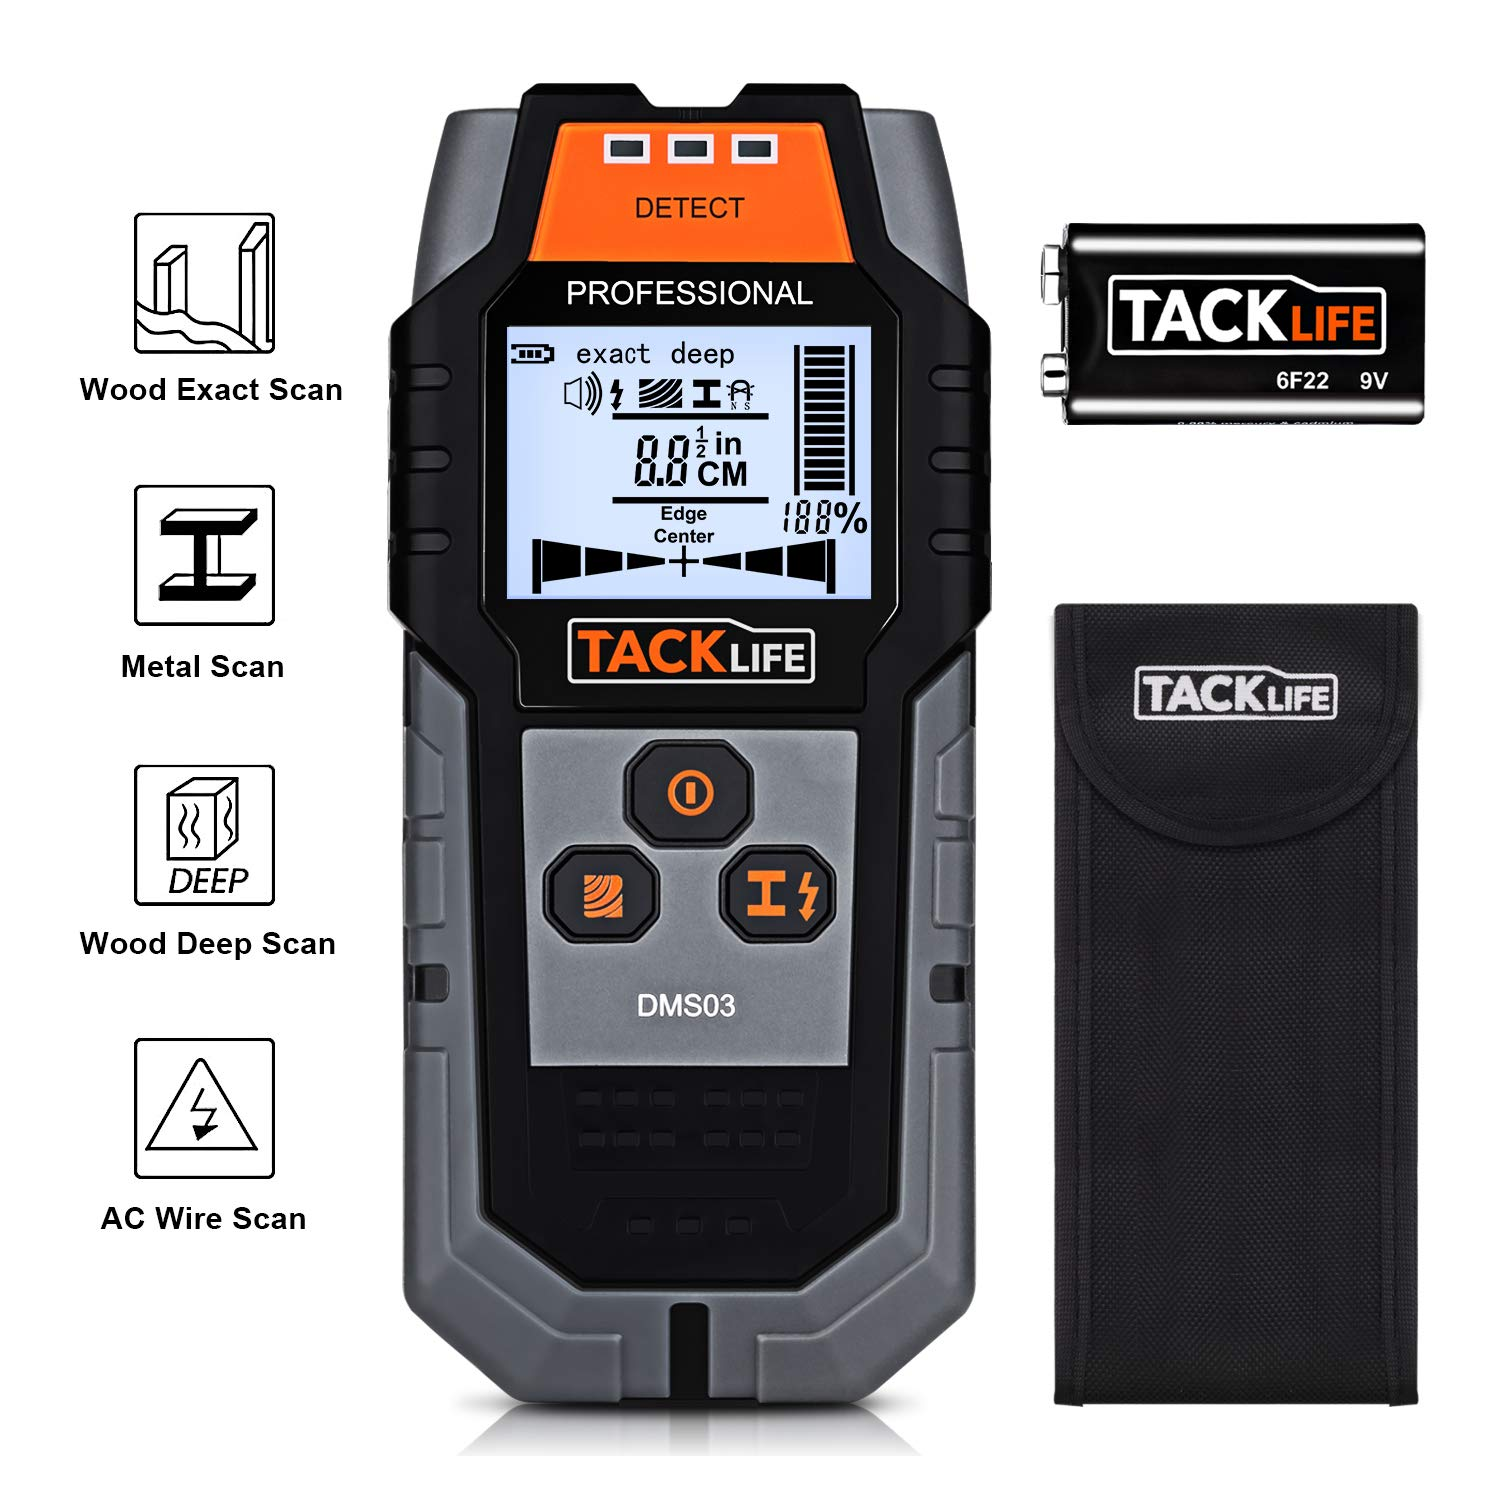 TACKLIFE Stud Finder Wall Scanner, 4 in 1 Center Finding Electronic Wall Detector Finders with Sound Warning, Four Scan Modes for Wood Stud/Metal/Live AC Wire/ Deep Detecting - DMS03